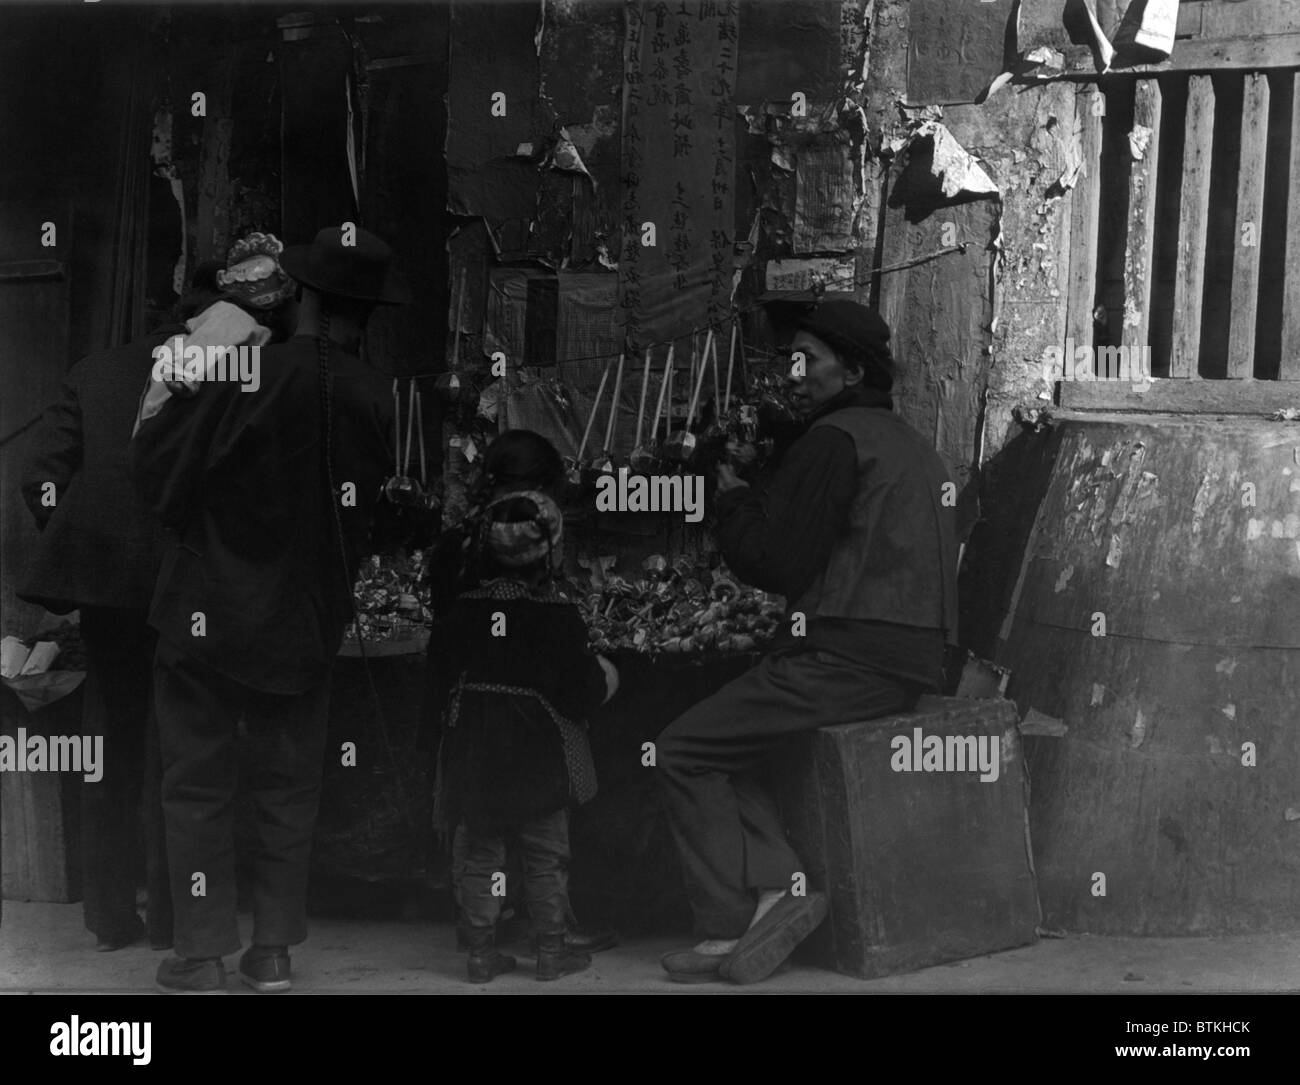 TOY MERCHANTS. Chinese immigrants in San Francisco. From Arnold Genthe's CHINATOWN SERIES. Ca. 1900. - Stock Image